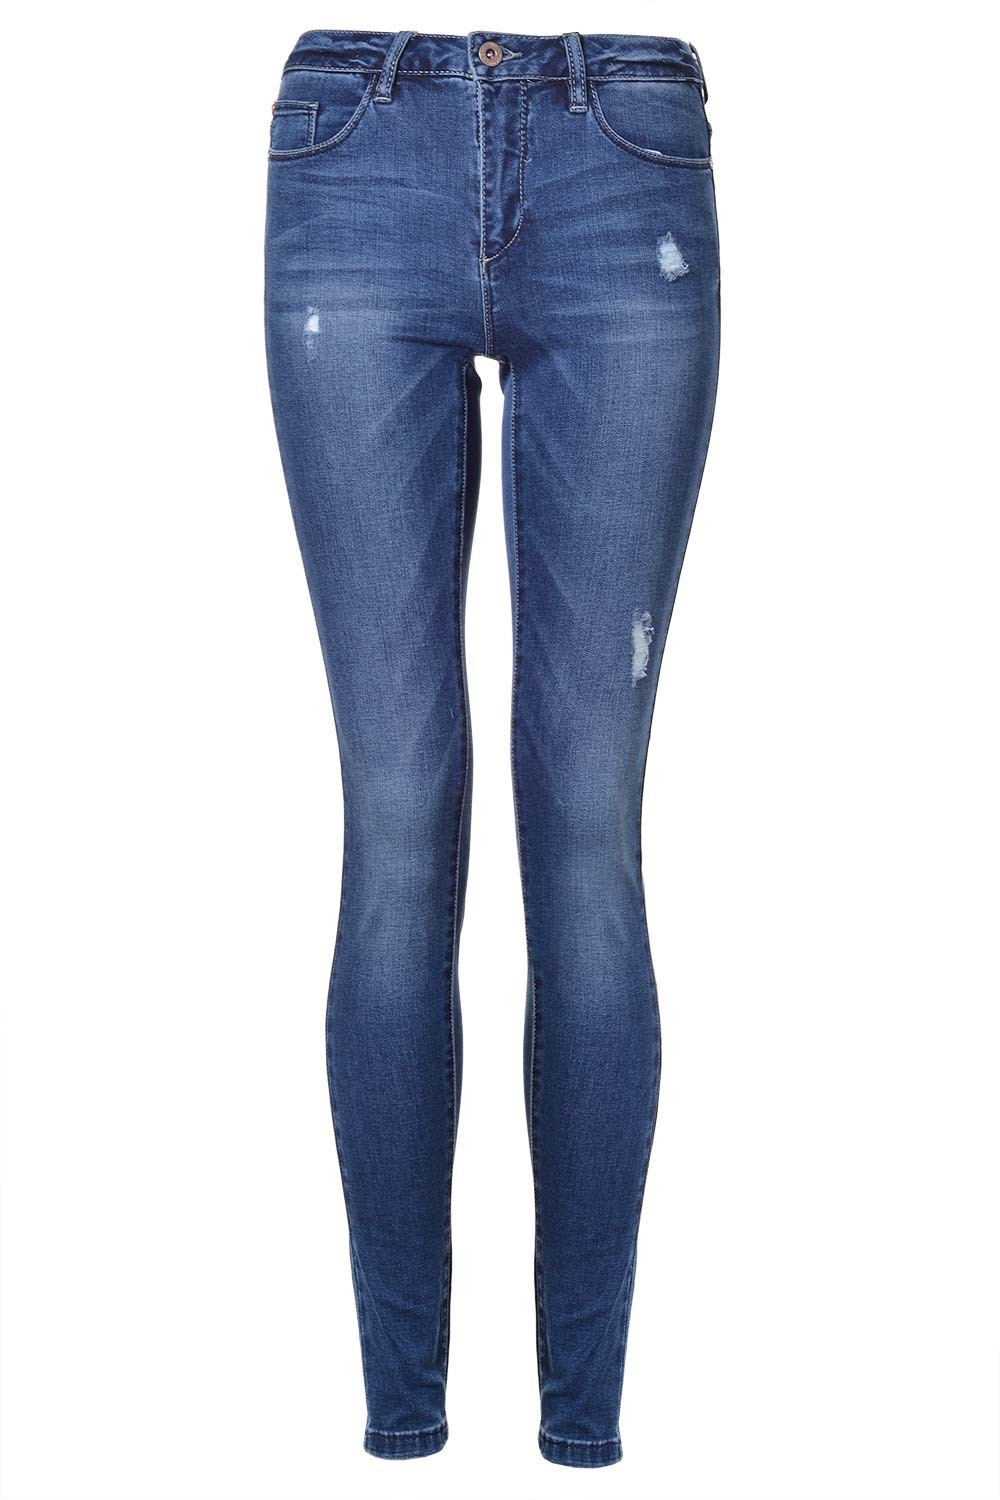 The Absolute Best Petite Skinny Jean, Says The Internet Best Petite Skinny Jeans - Pants For Short Women. Clothing. People either love the rain or really hate it — nothing in-between.